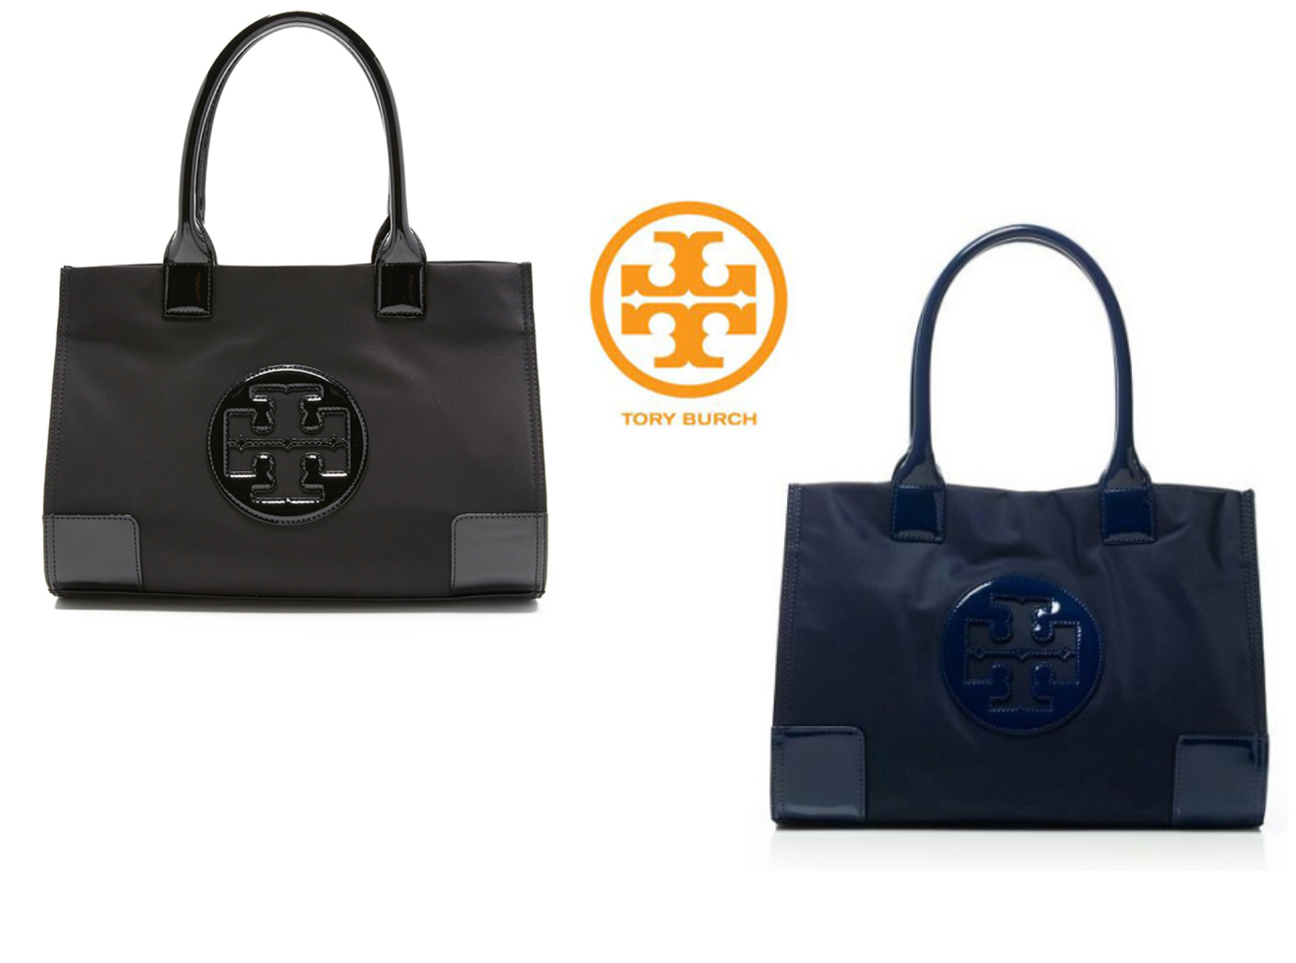 TORY BURCH Nylon Ella Tote Mini Size for Woman Bag with Free Gift ++